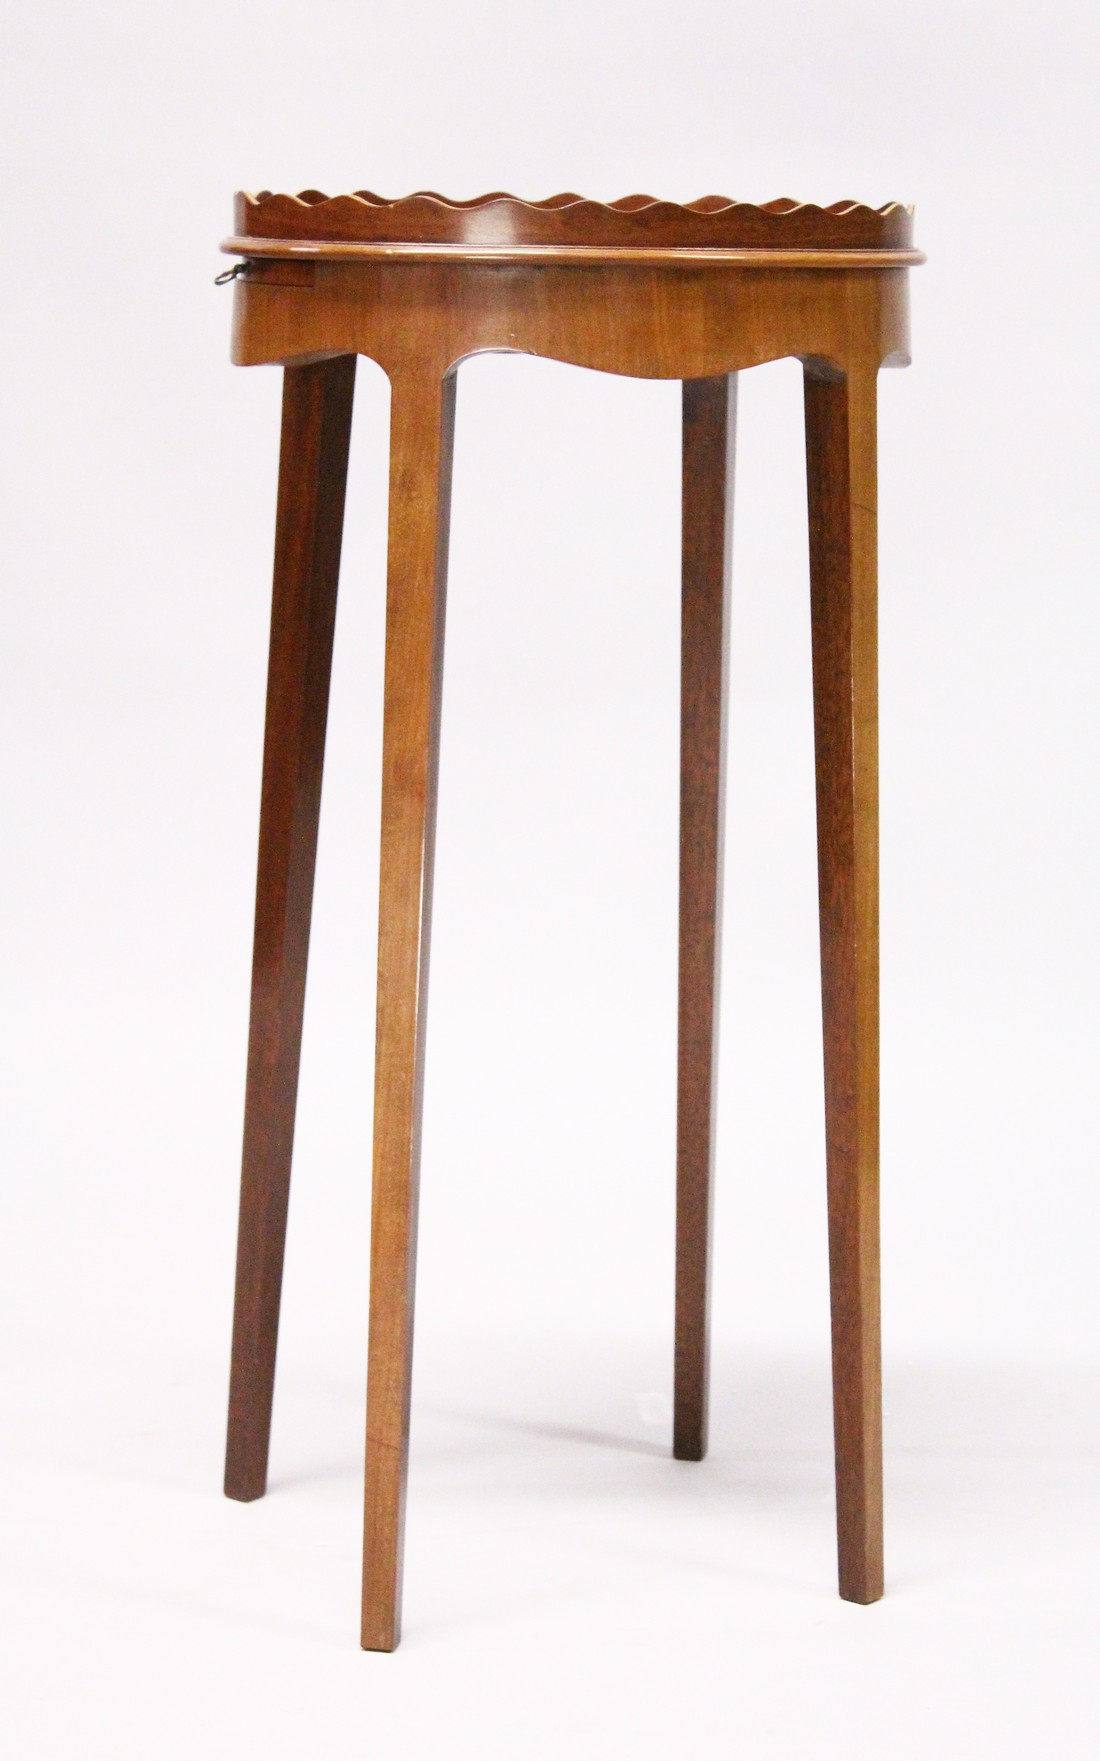 A GEORGIAN STYLE SATINWOOD AND MAHOGANY OVAL URN STAND on tapering legs. 1ft 2ins wide, 2ft 4ins